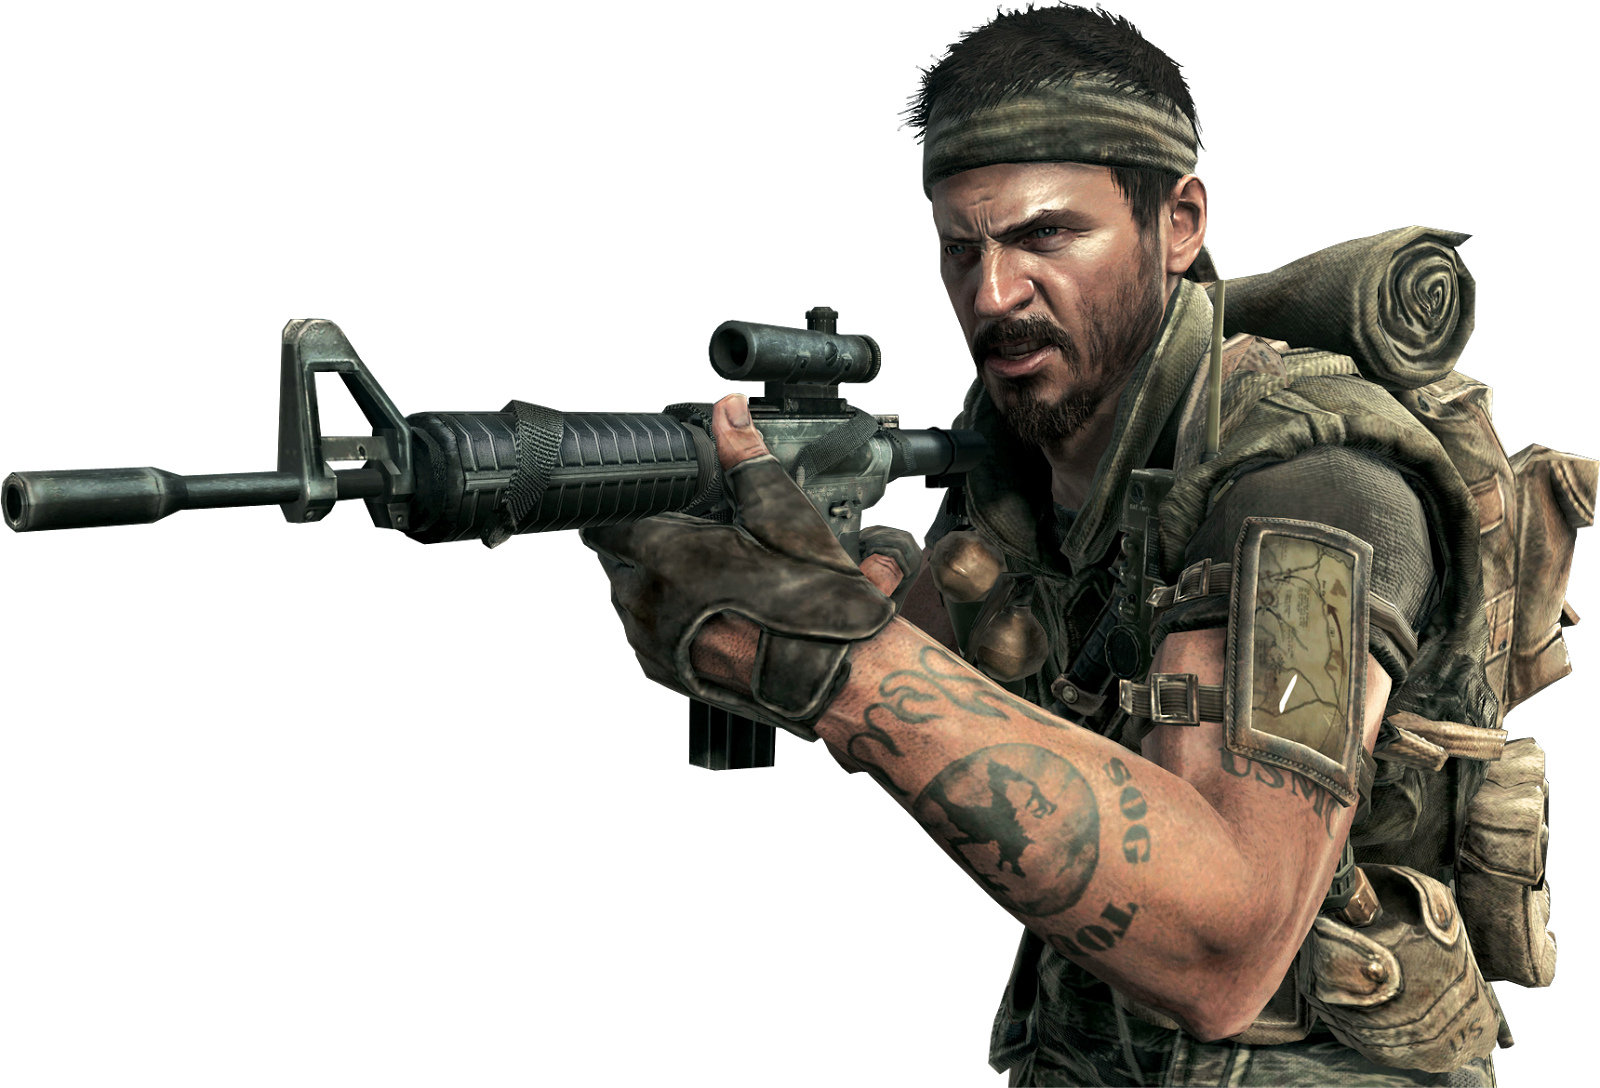 BackgroundsTG: Call of Duty png